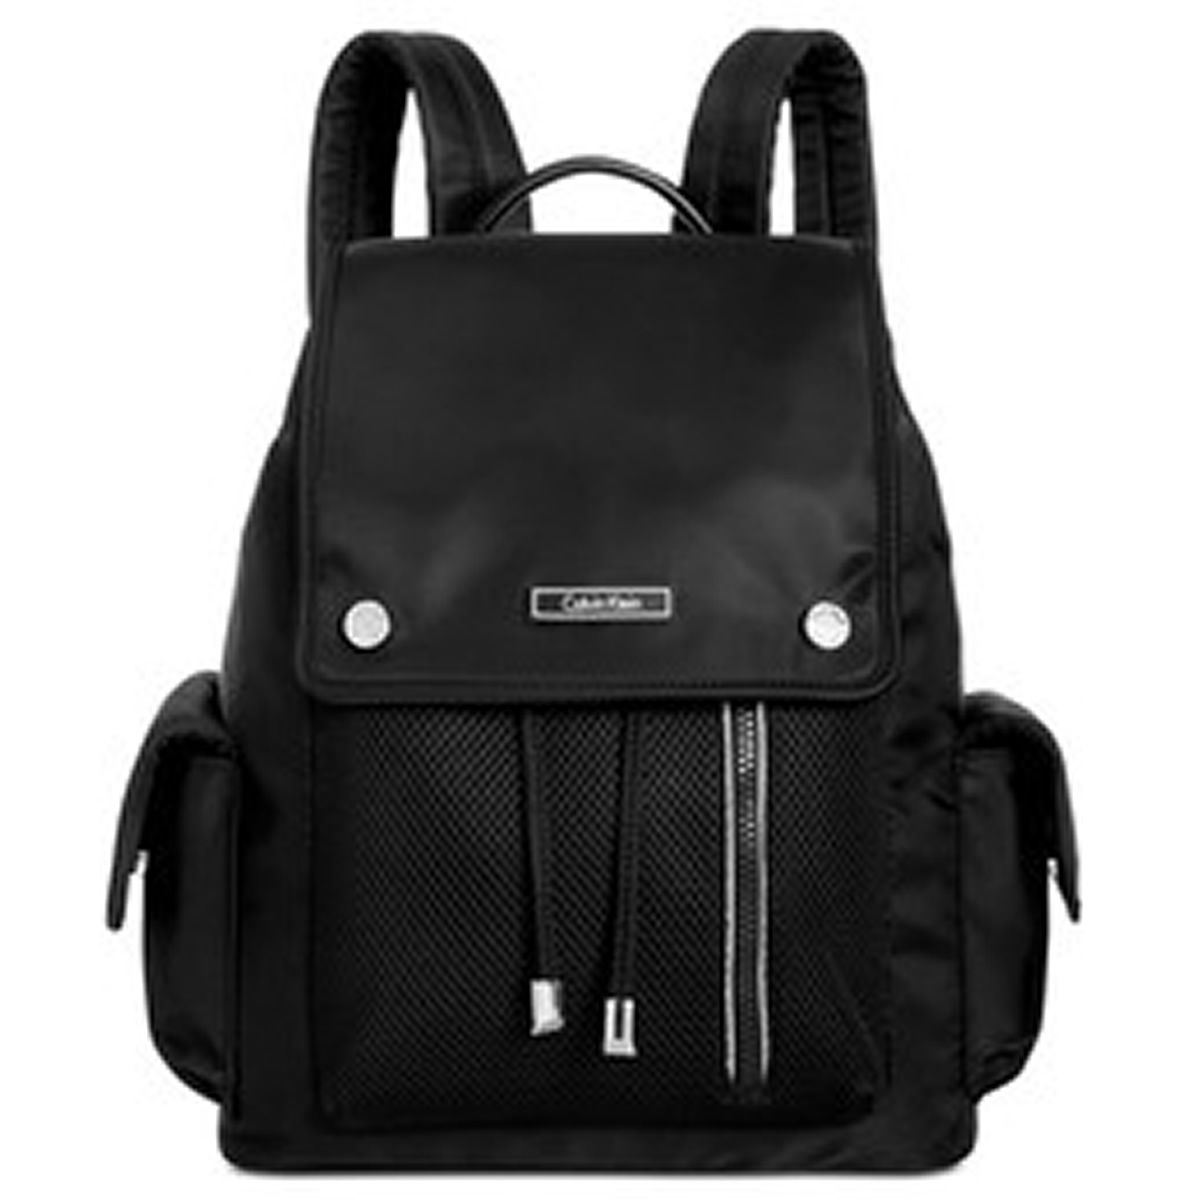 81395e9370ed Calvin Klein Backpacks - Macy s